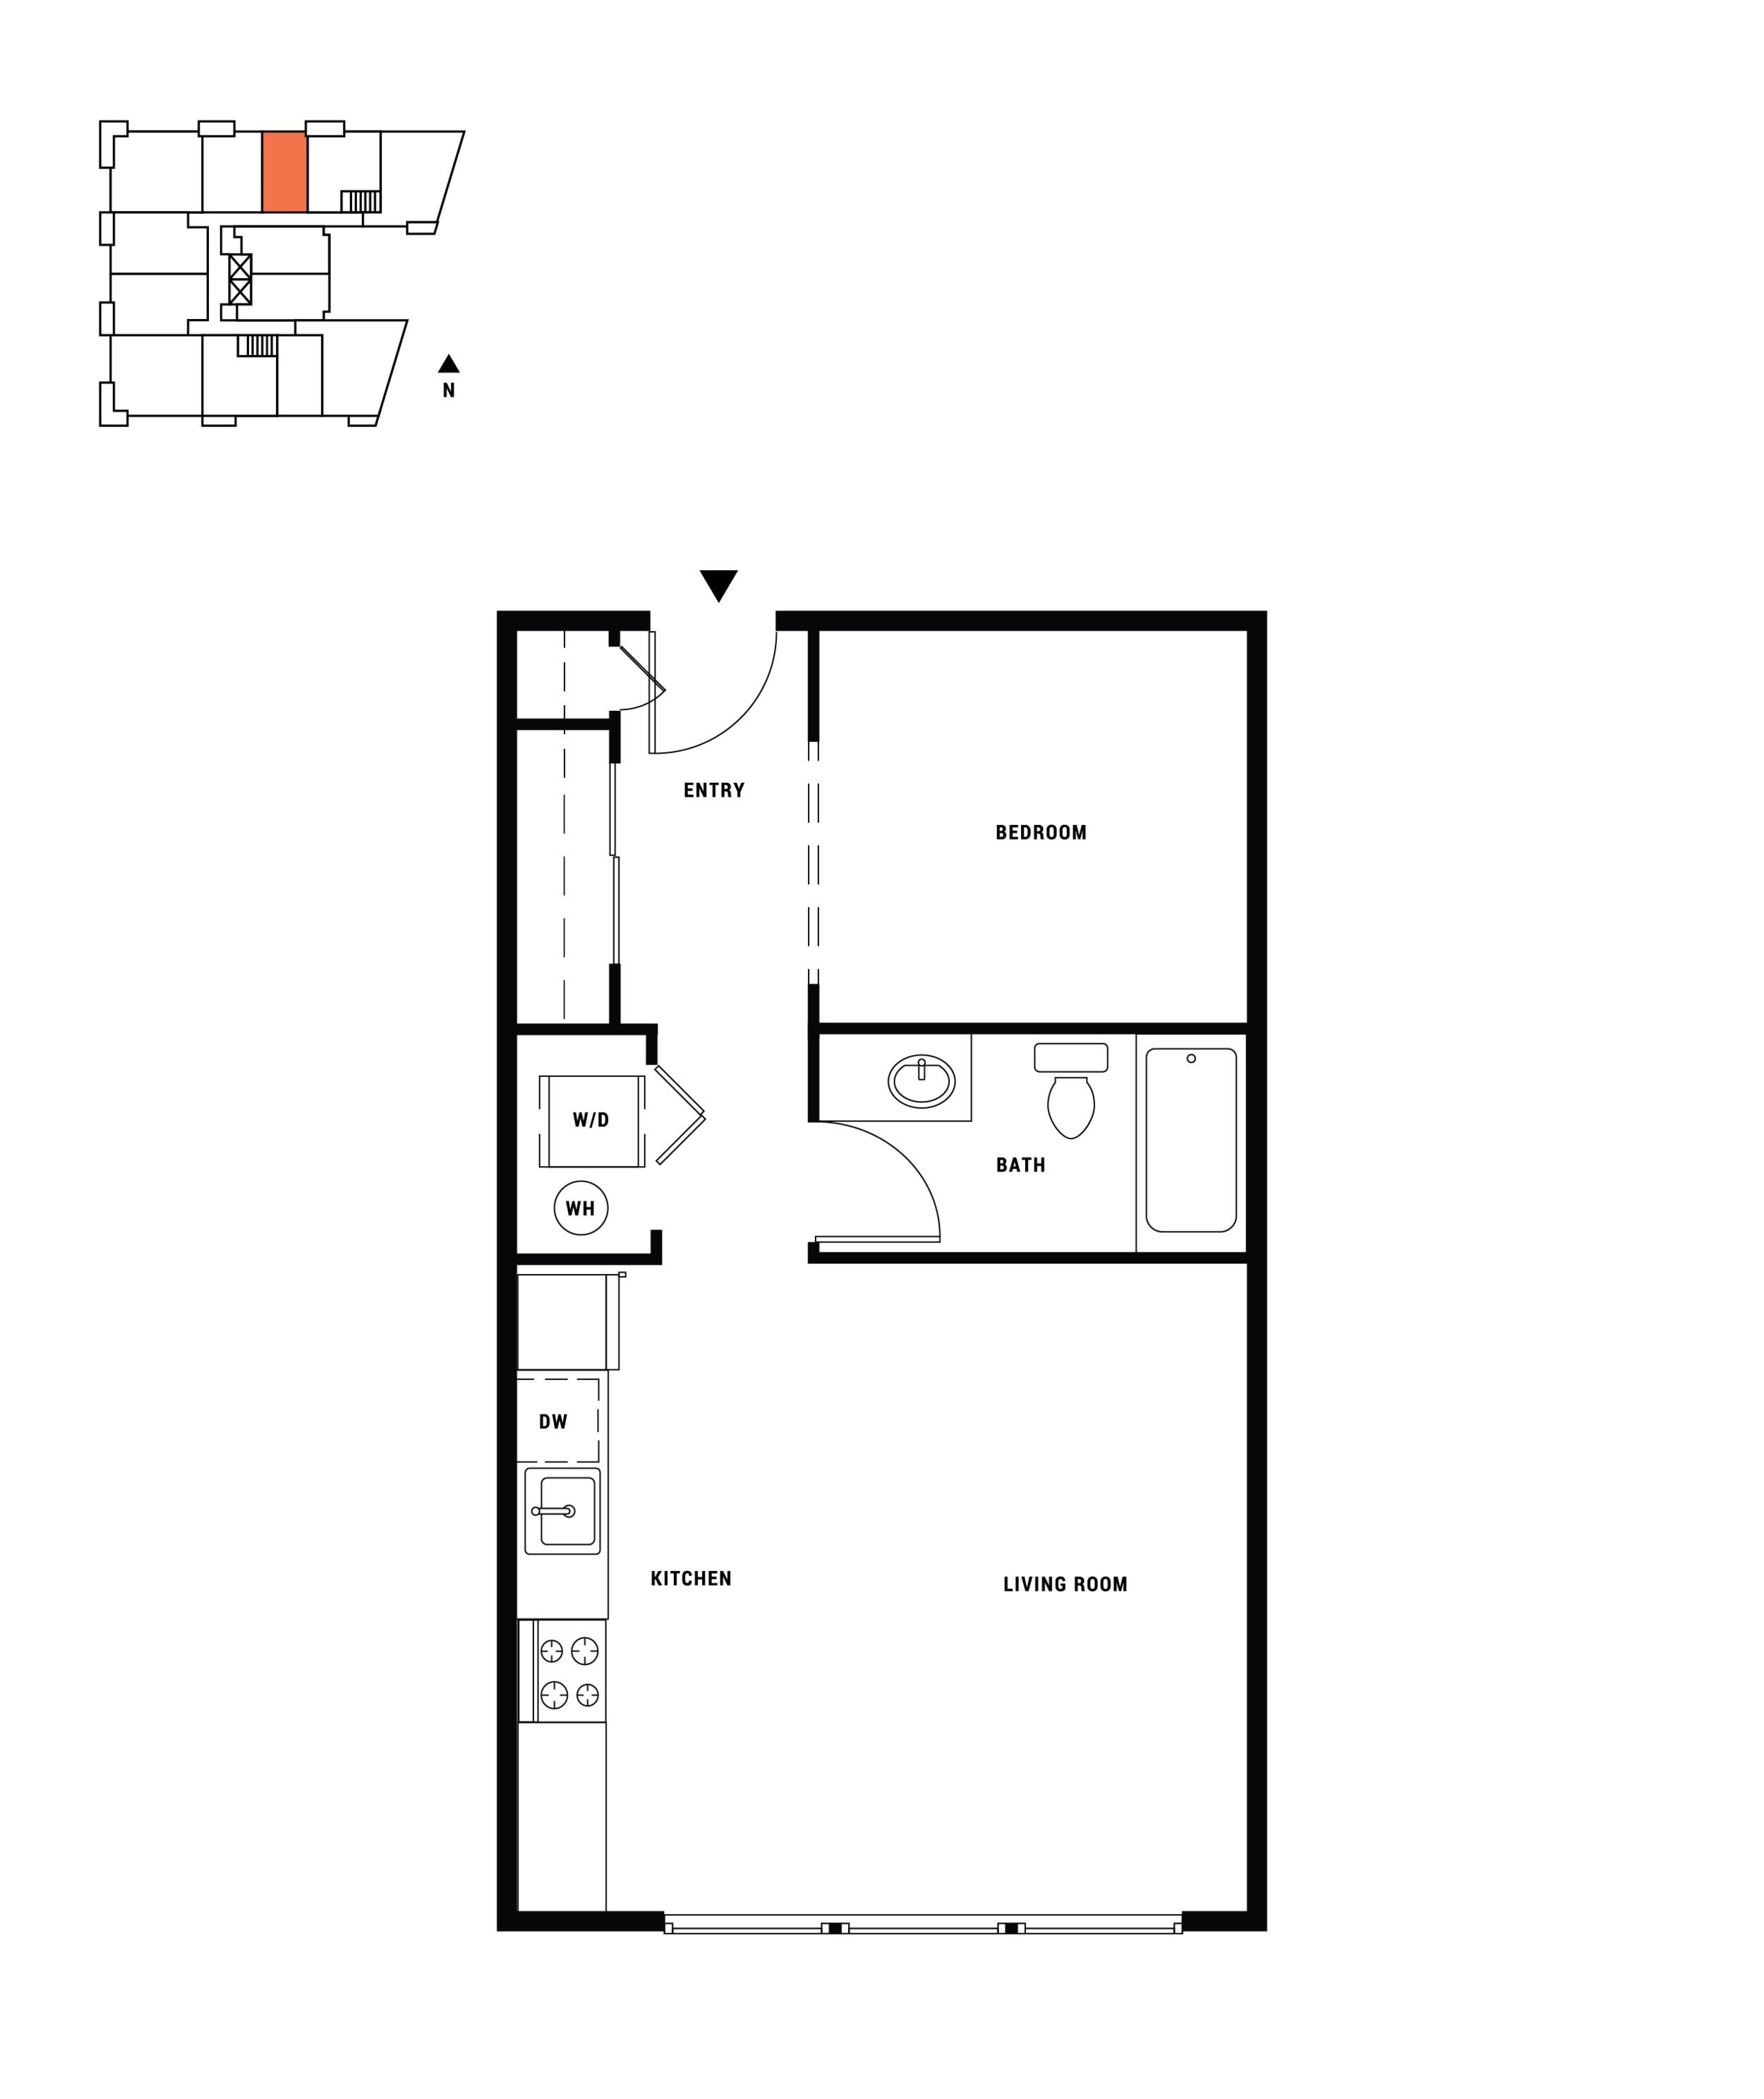 The Slater_Kirkland_Floorplans_no_logo-03.png